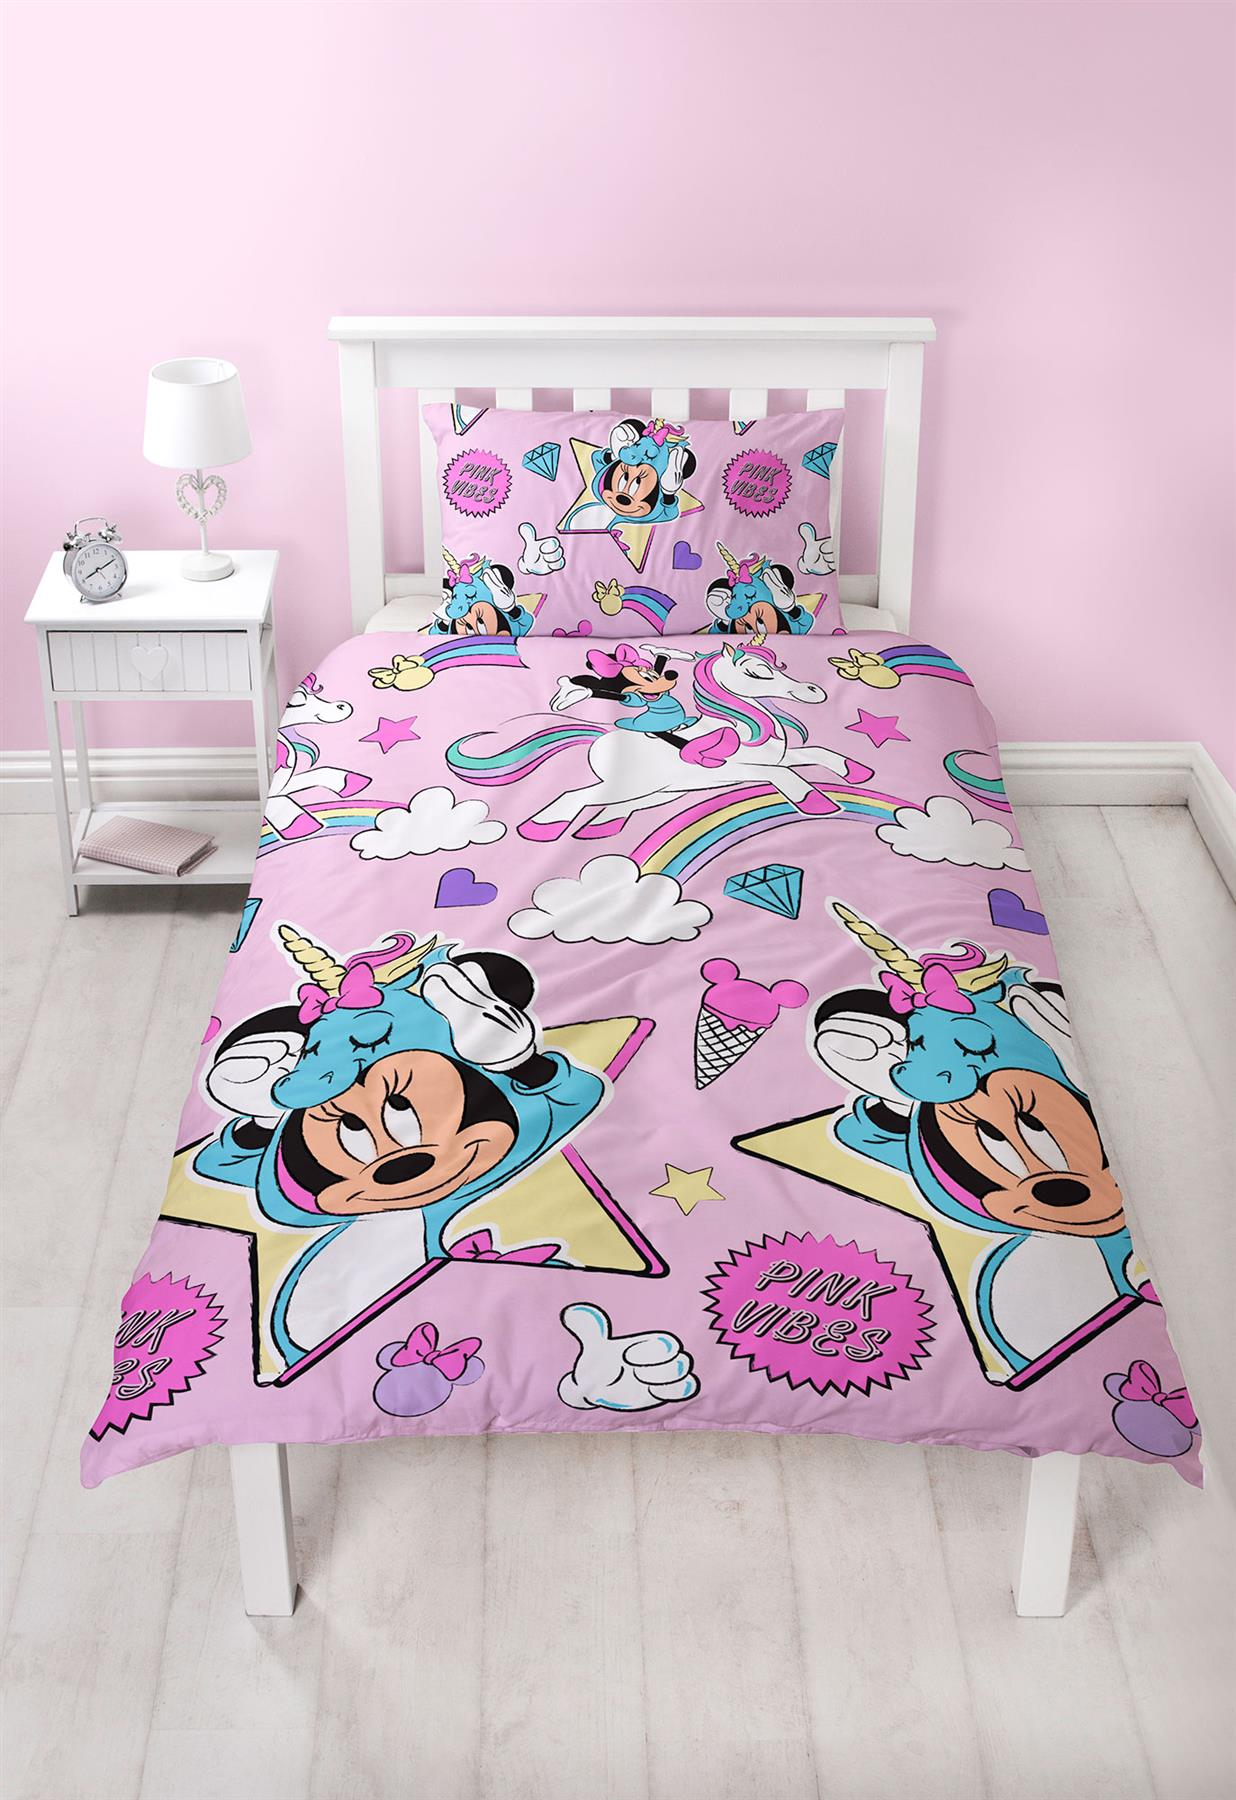 Disney-Mickey-Minnie-mouse-fundas-nordicas-SINGLE-doble-Ropa-De-Cama-Reversible miniatura 47